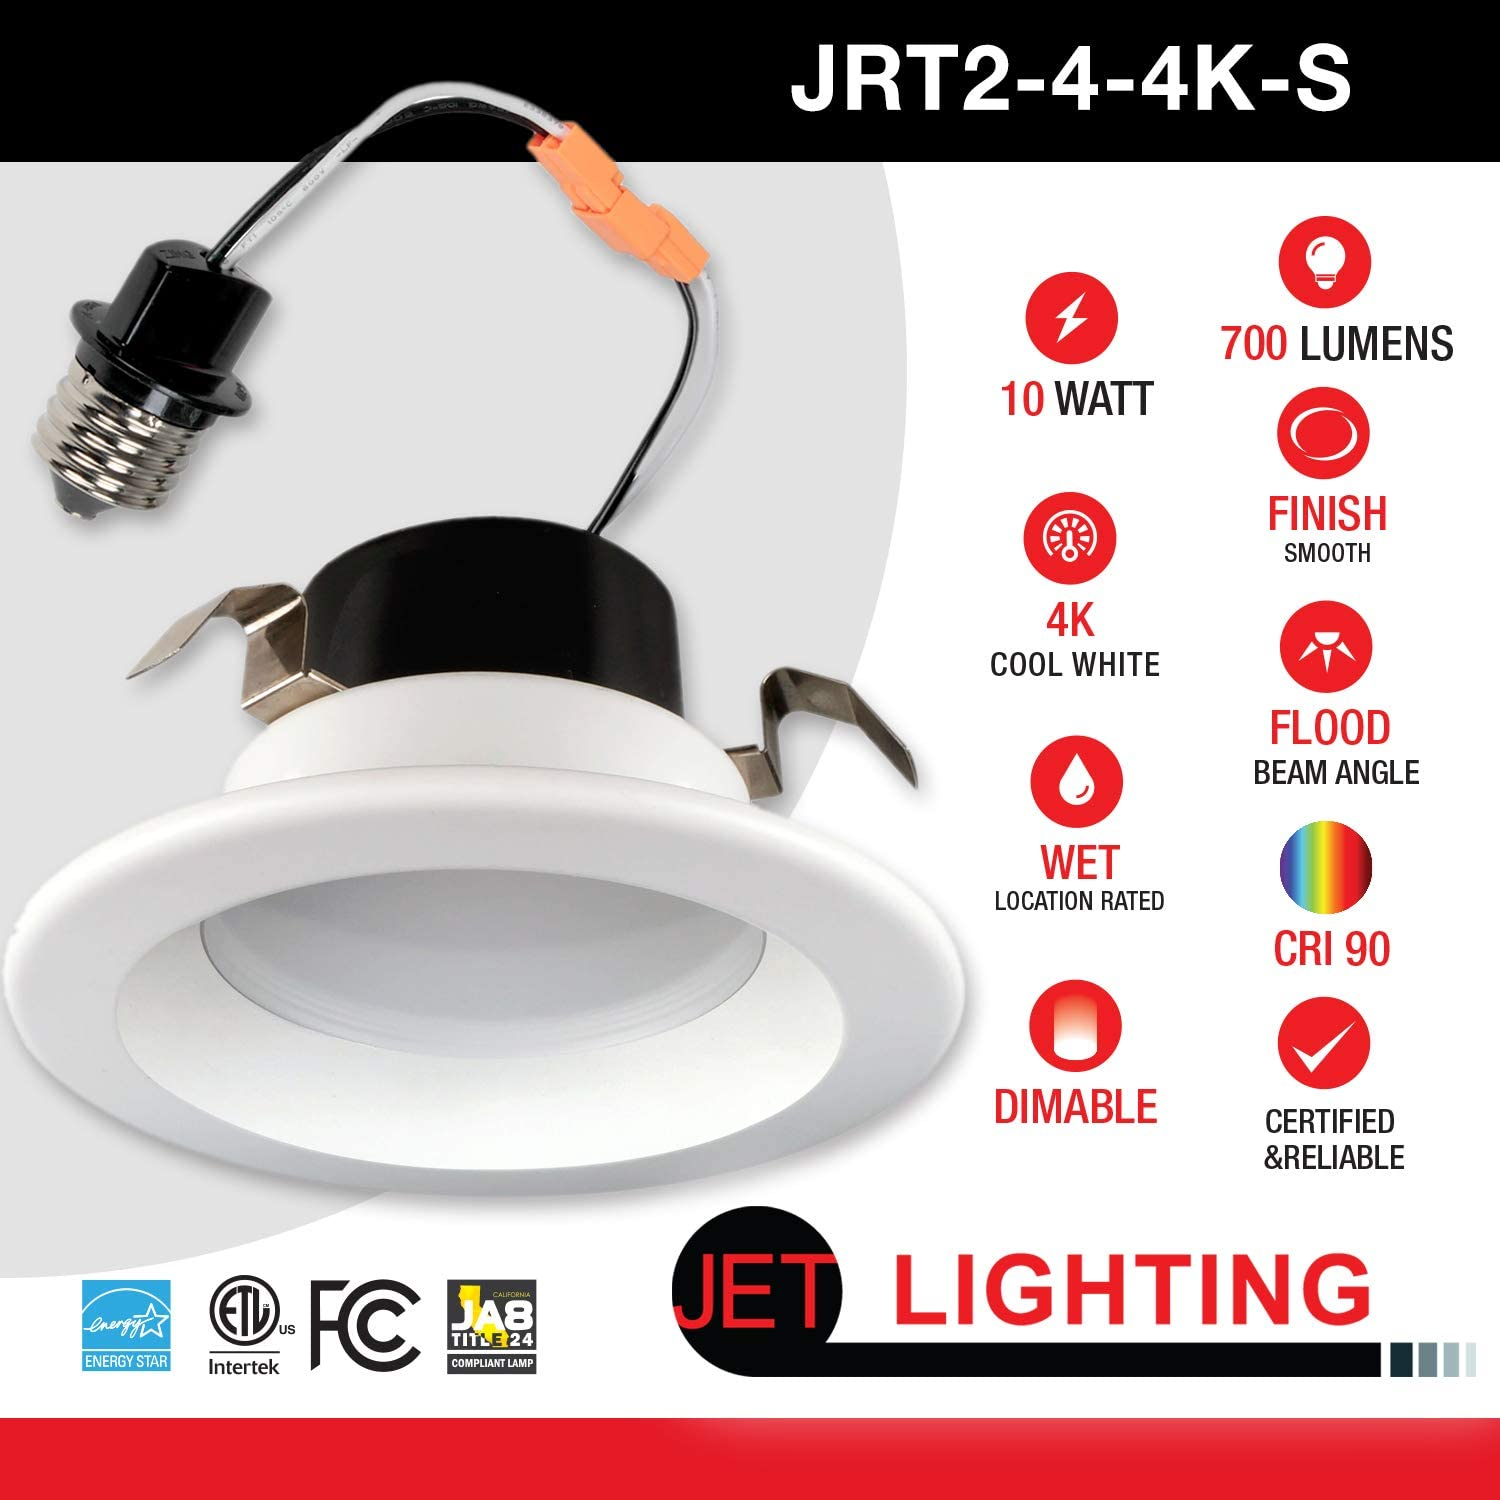 3000K Soft White 10W Smooth Finish Simple Retrofit Installation 640 LM Dimmable Jet Lighting 4 Pack 4 Inch LED Retrofit Recessed Downlight Trim Damp Rated UL Energy Star